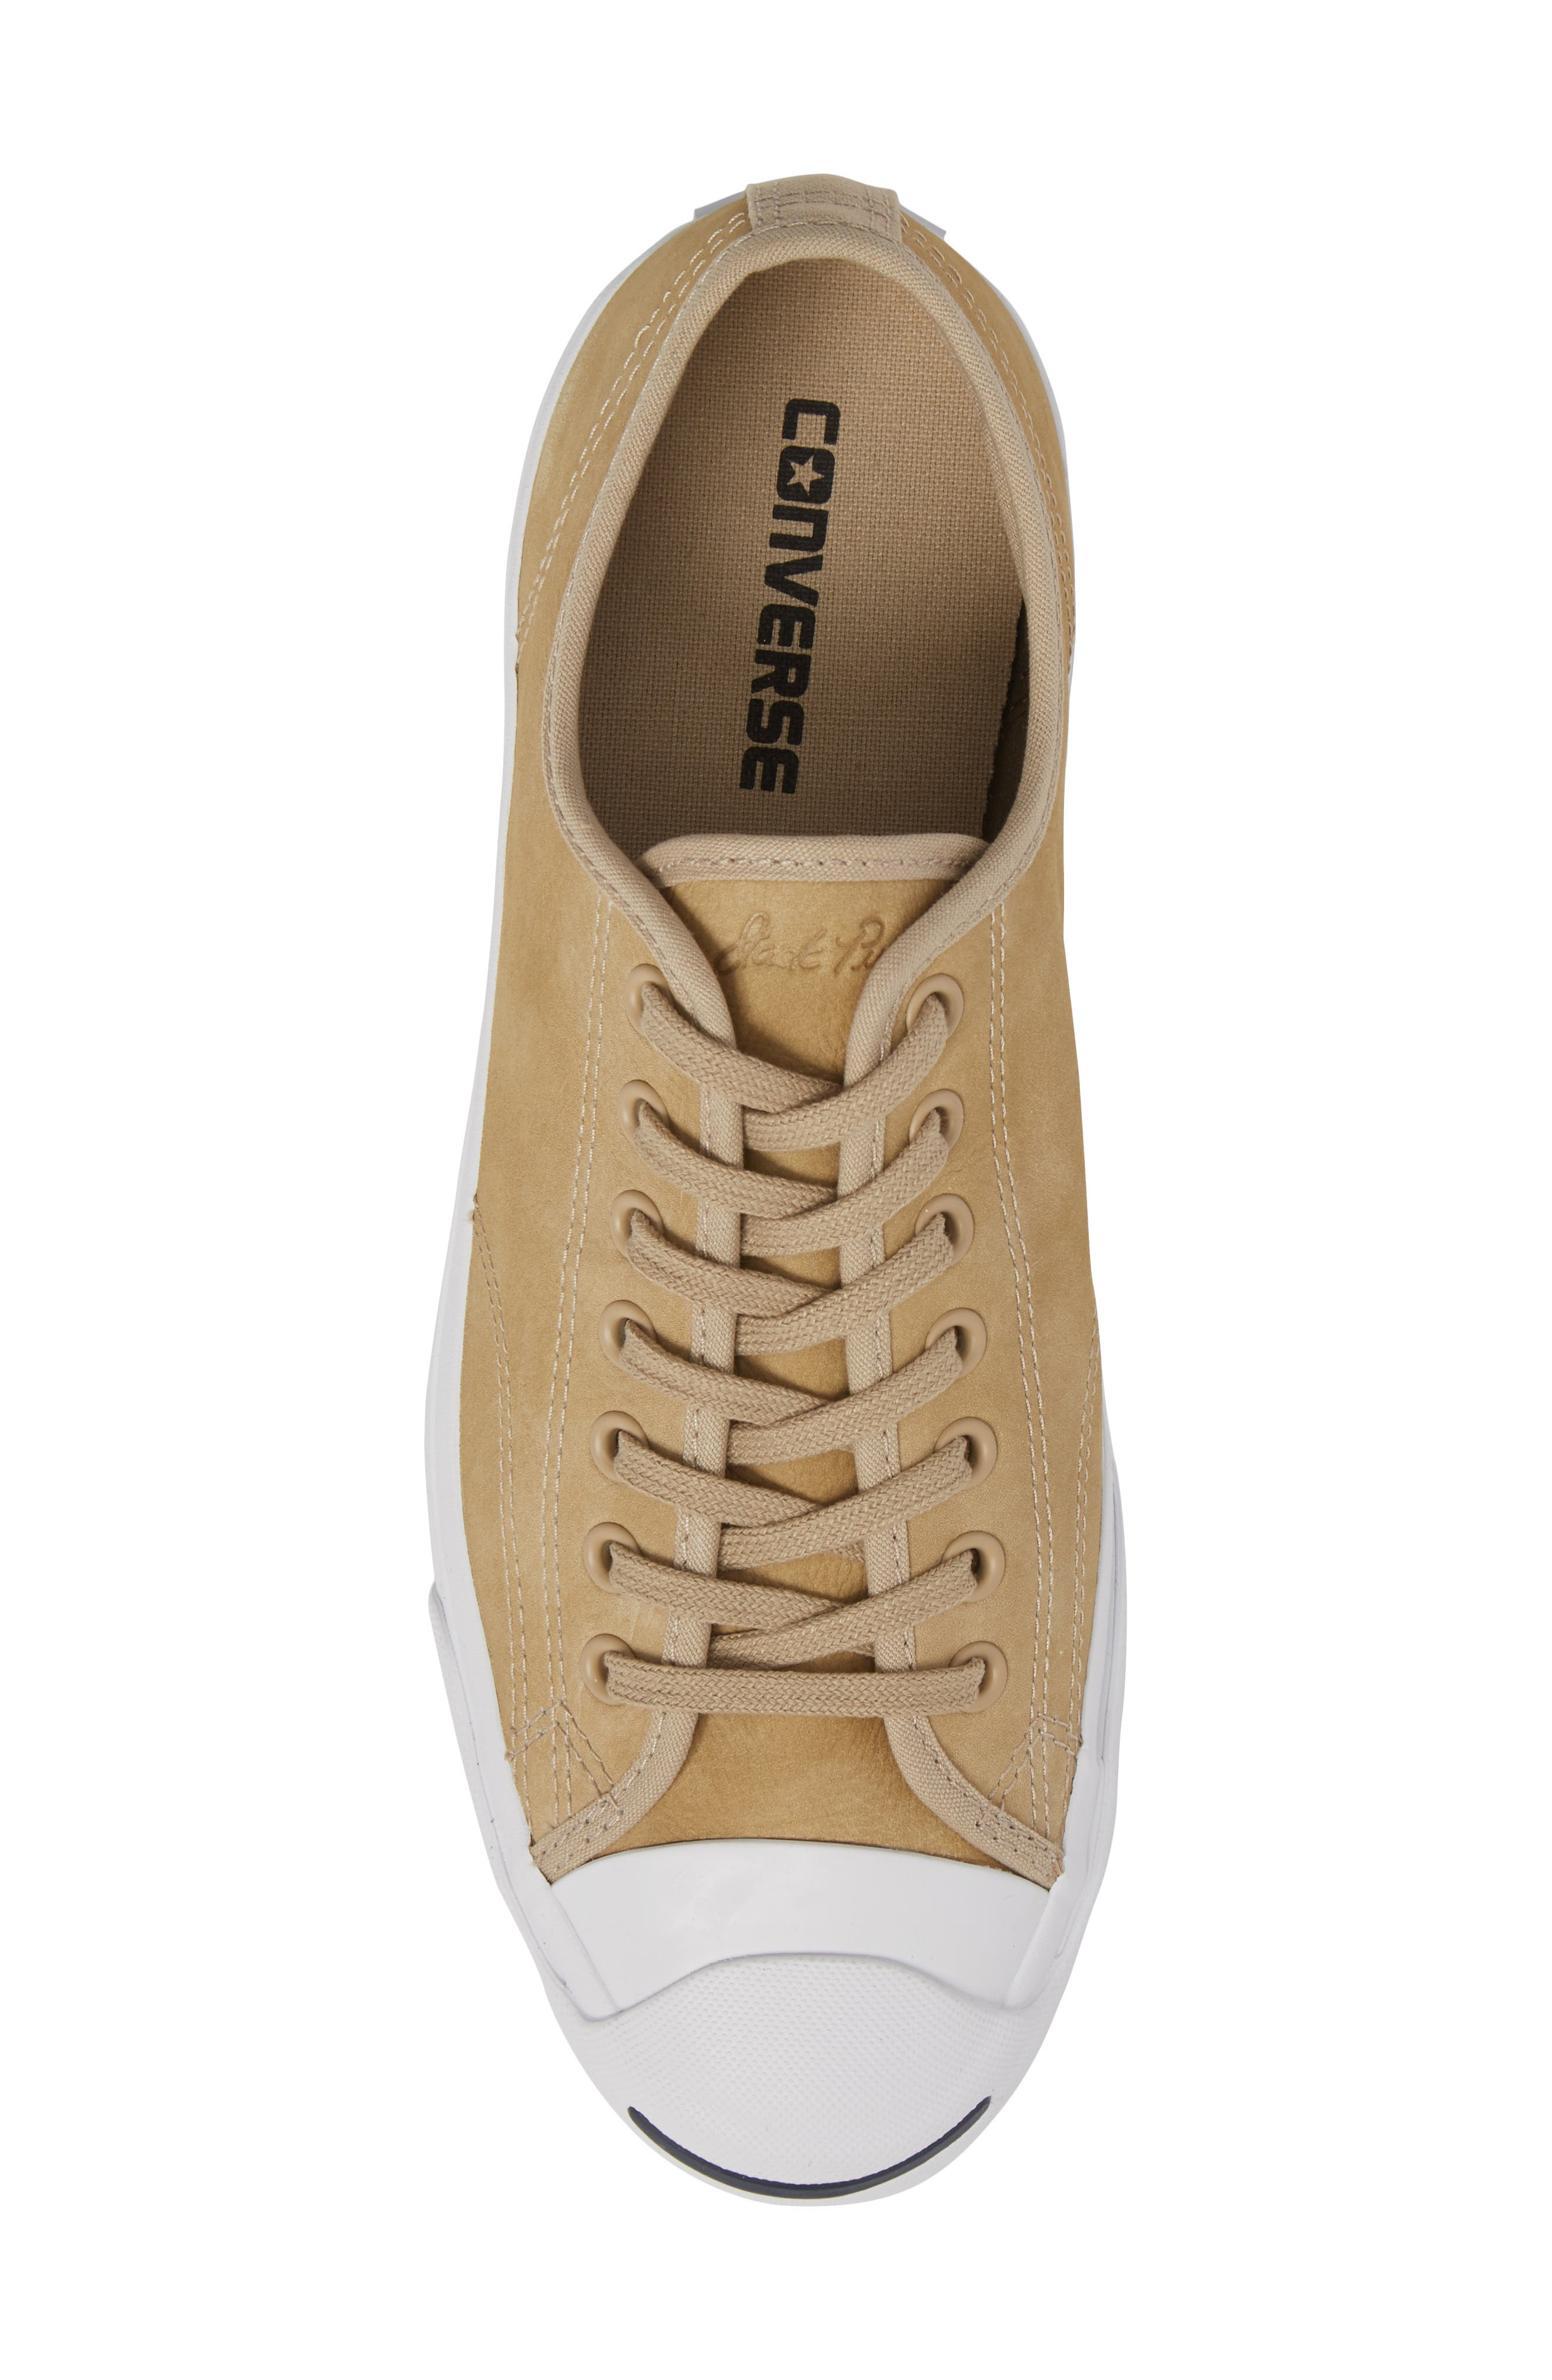 'Jack Purcell - Jack' Sneaker,                             Alternate thumbnail 5, color,                             270